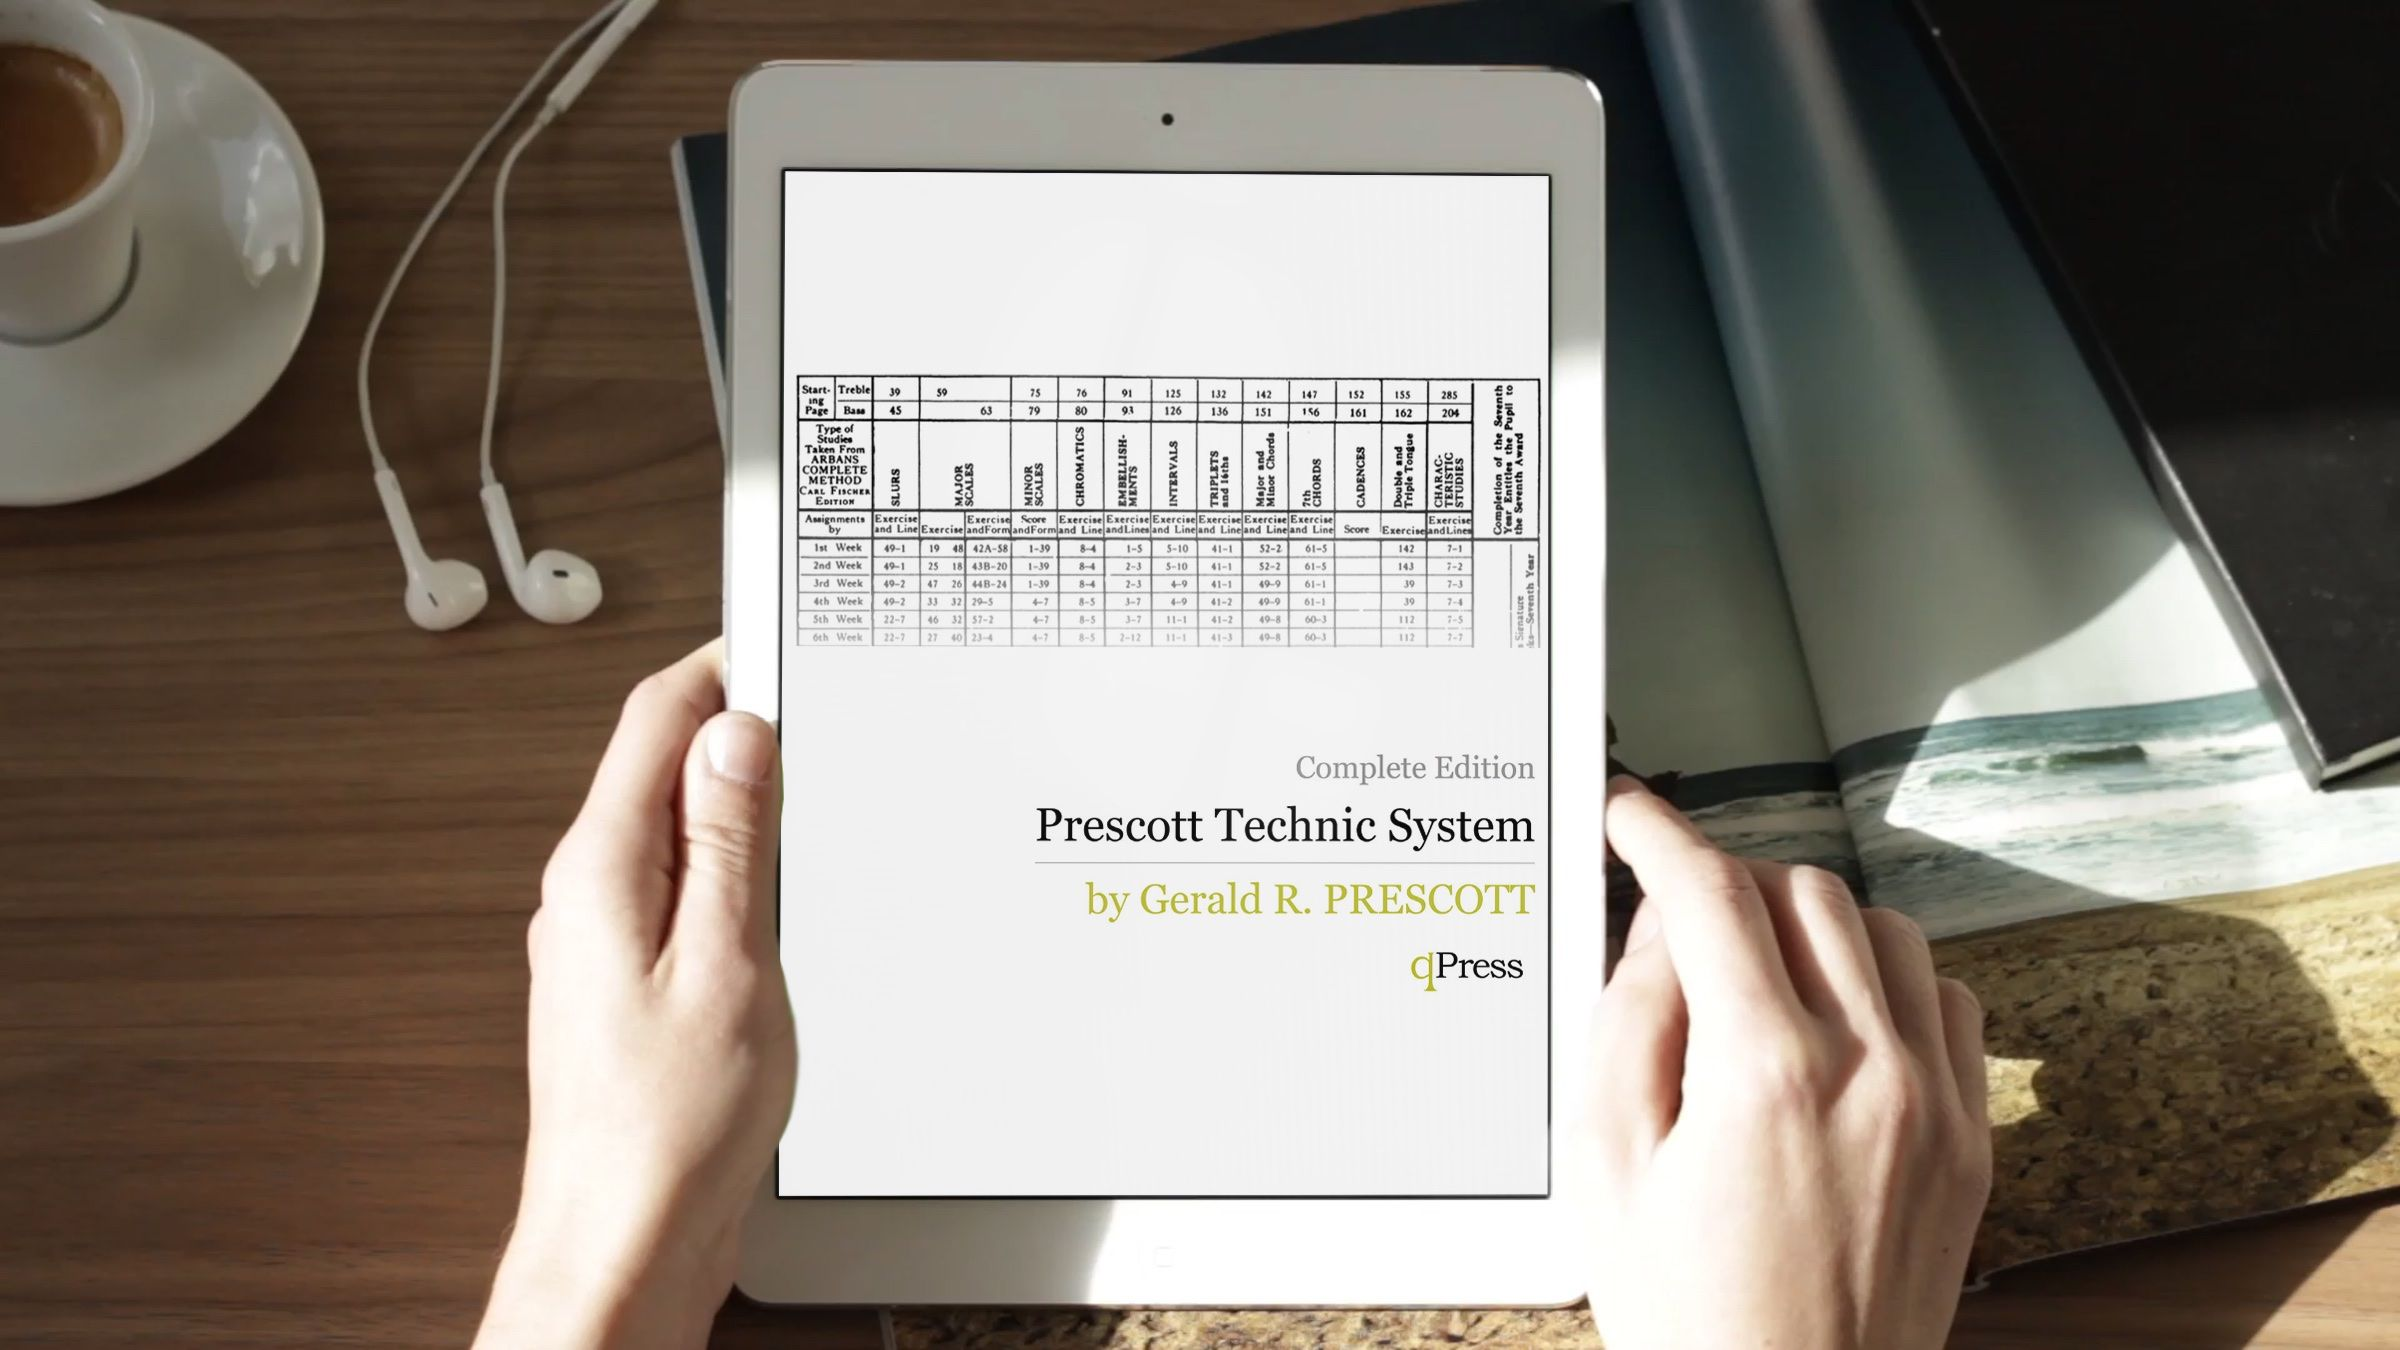 Prescott technic system for arban trumpet by prescott gerald r gerald prescotts technic system for the arban method a weekly course that spans 12 years fandeluxe Choice Image